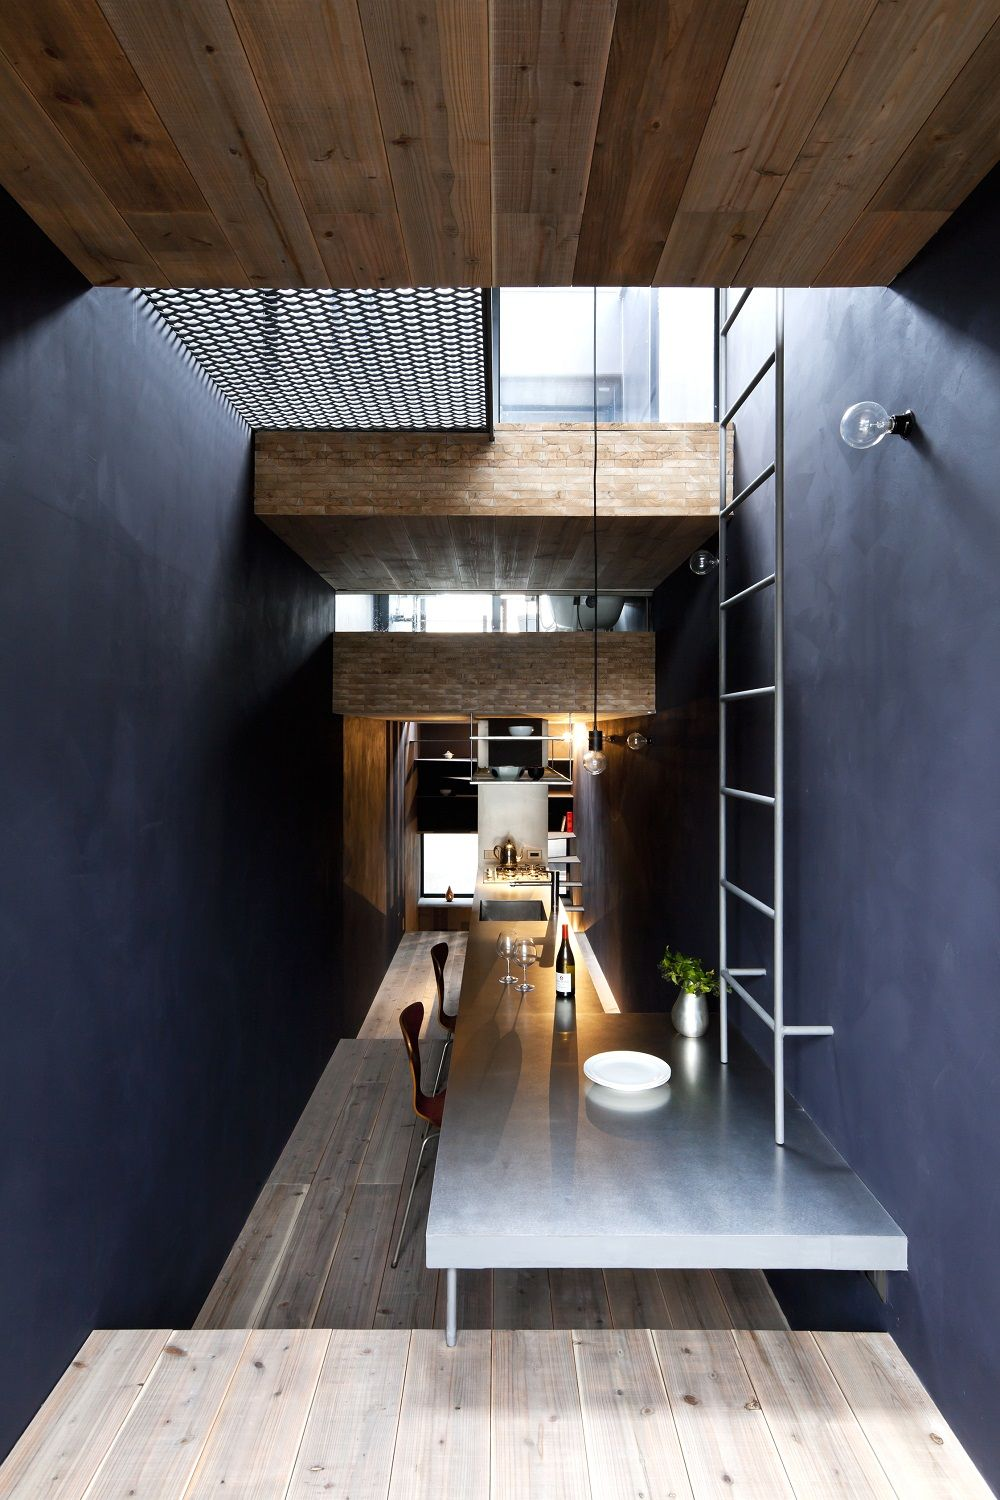 6-Foot-Wide Home is Vertical Living at its Finest